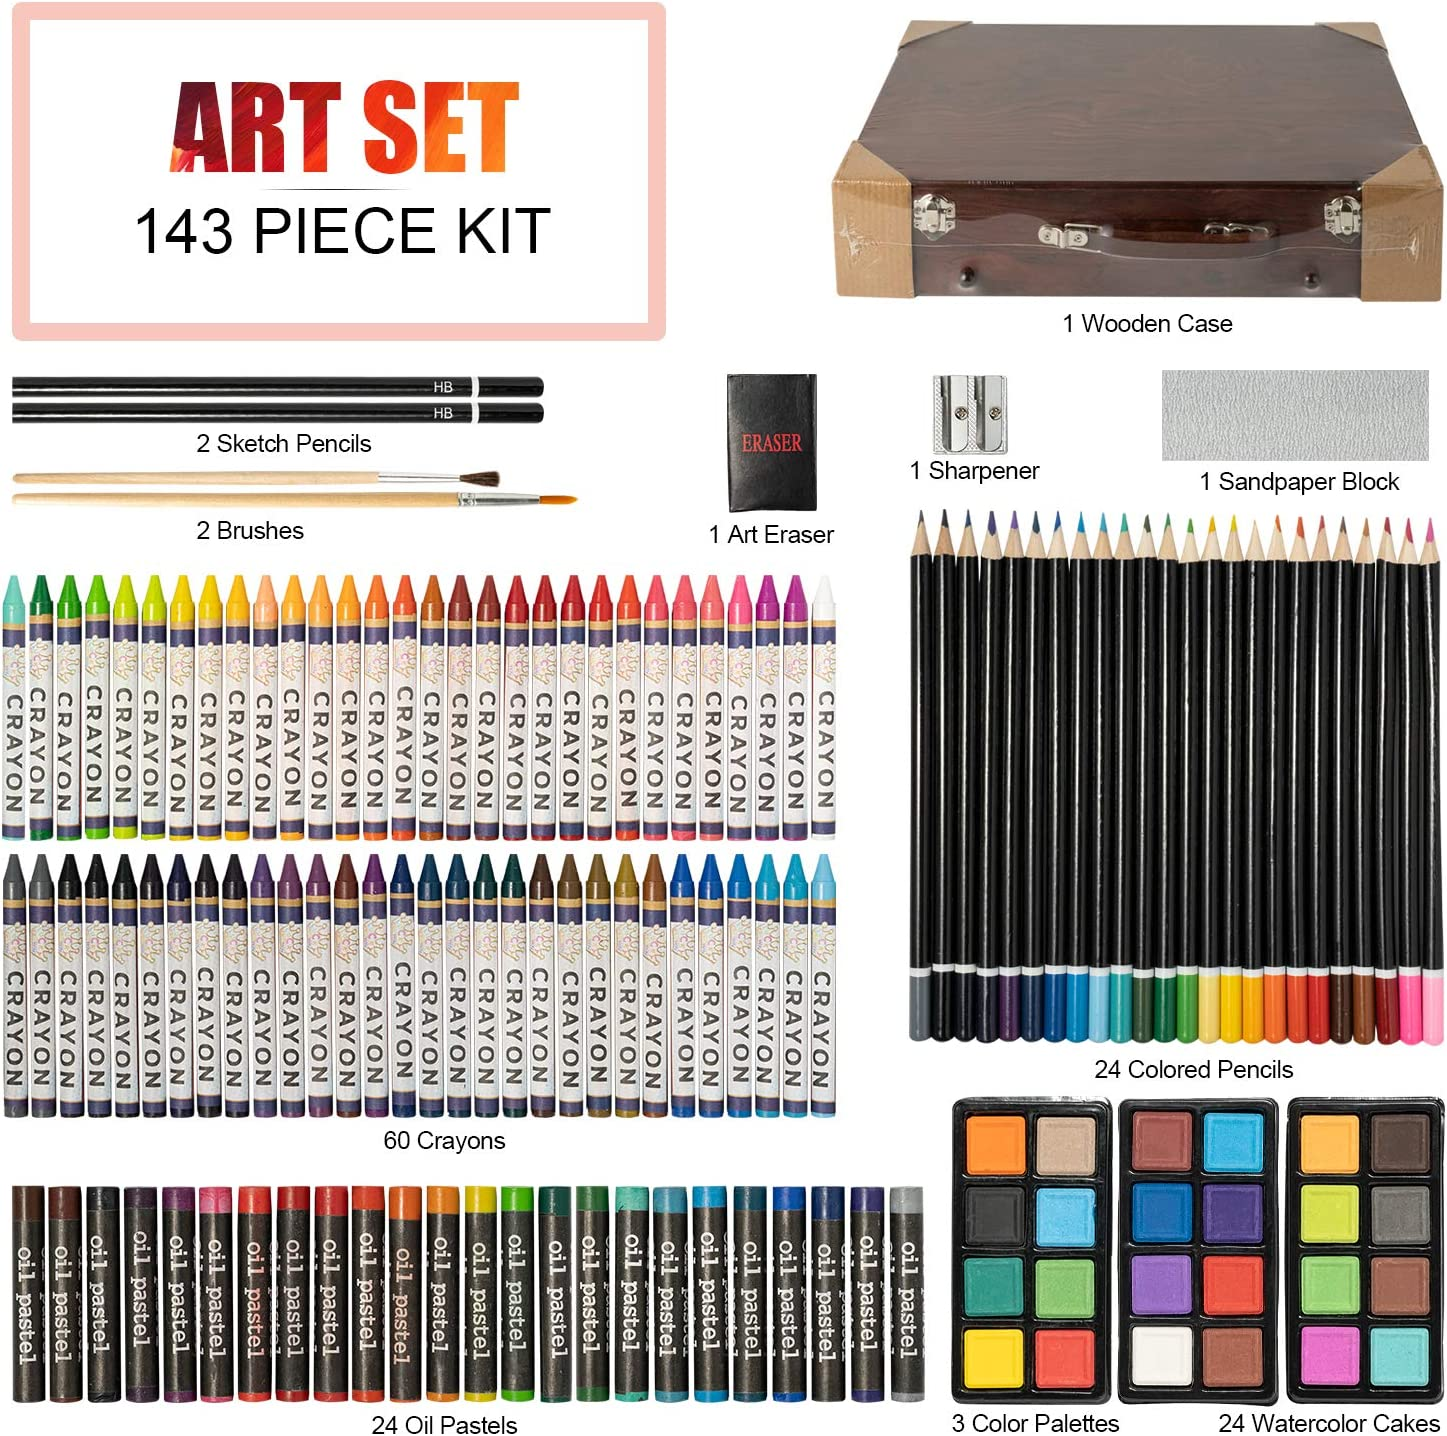 Artist Drawing/&Painting Set Teens and Adults Art Supplies with Wooden Case 148 Piece Deluxe Art Set Professional Art Kit for Kids